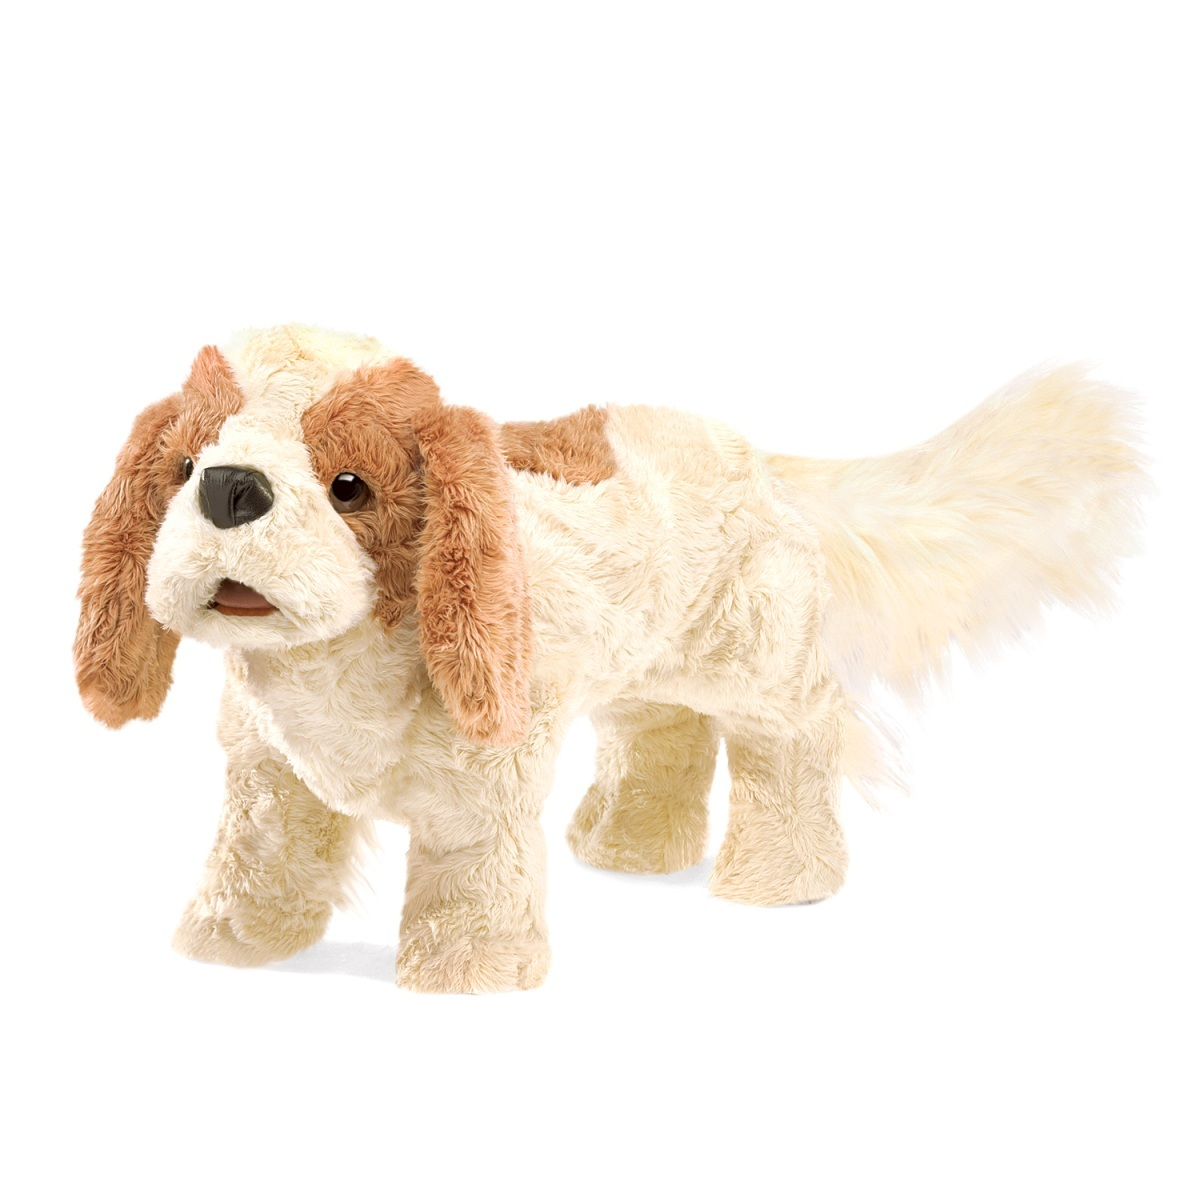 Folkmanis Hand Puppet - Cavalier King Charles Spaniel image